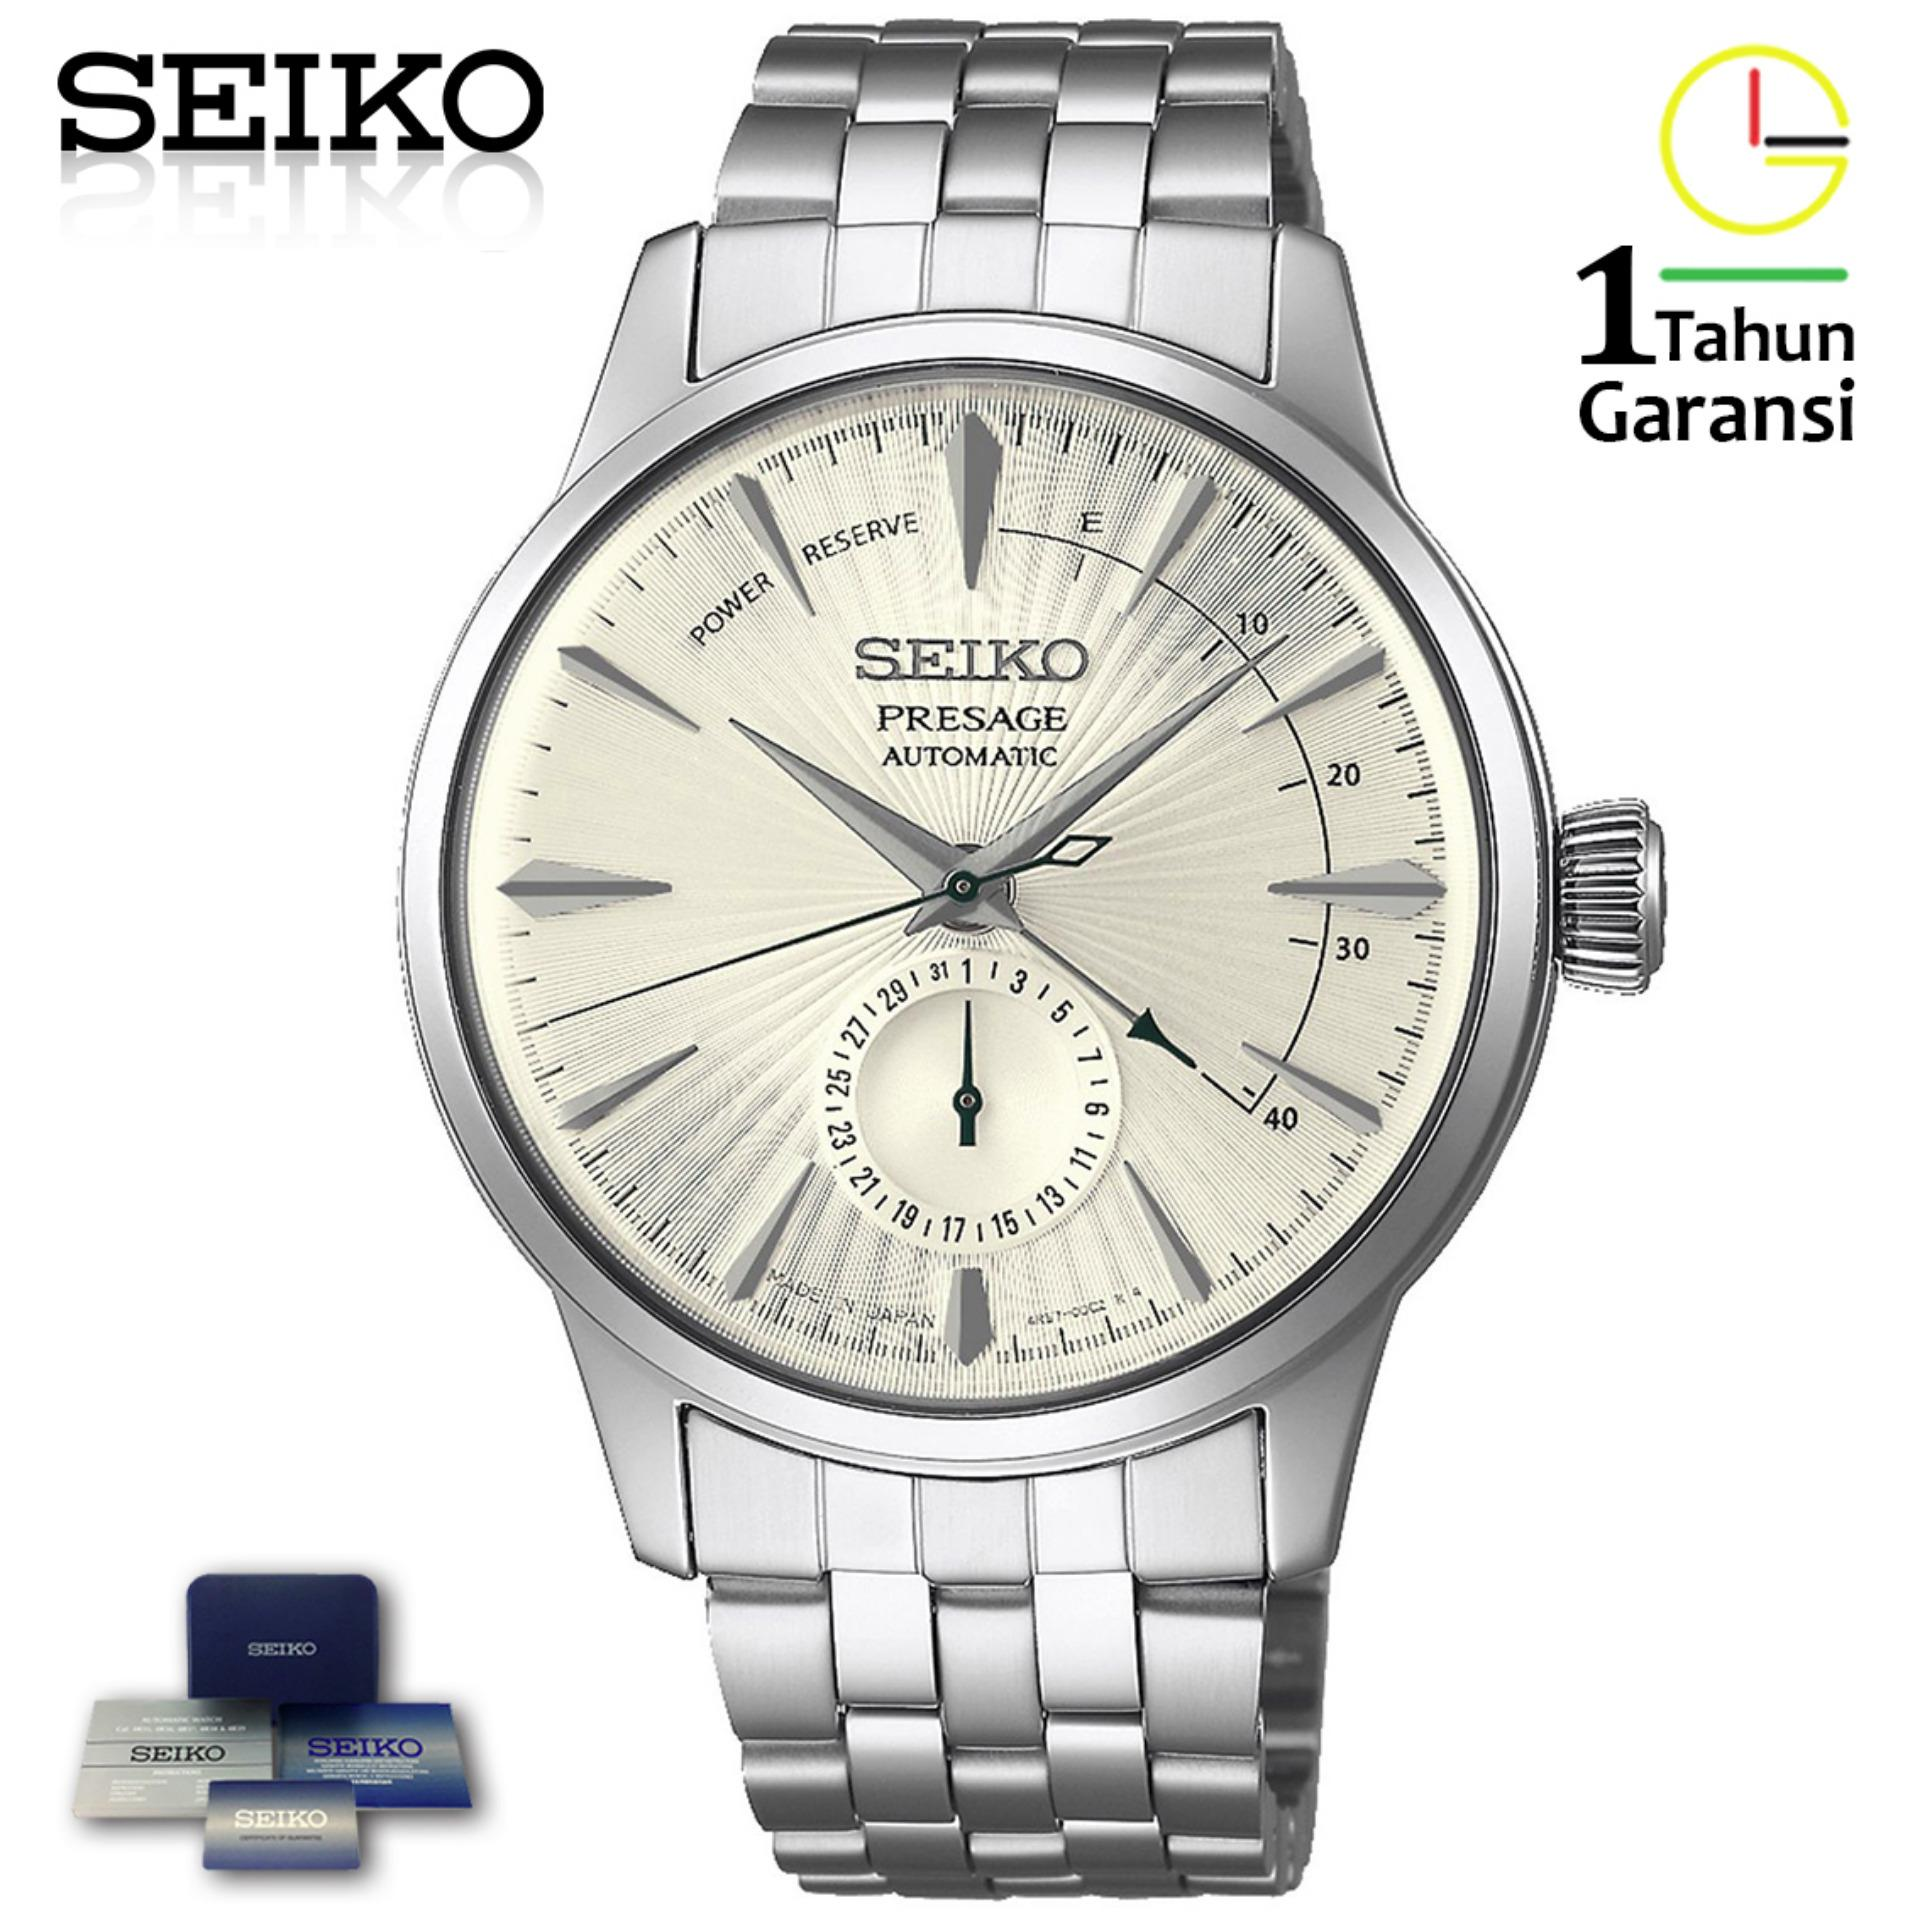 Buy Sell Cheapest Seiko Presage Srpb43j1 Best Quality Product Automatic Jam Tangan Silver Ssa257j1 Ssa341j1 Martini Cocktail Stainless Steel Strap